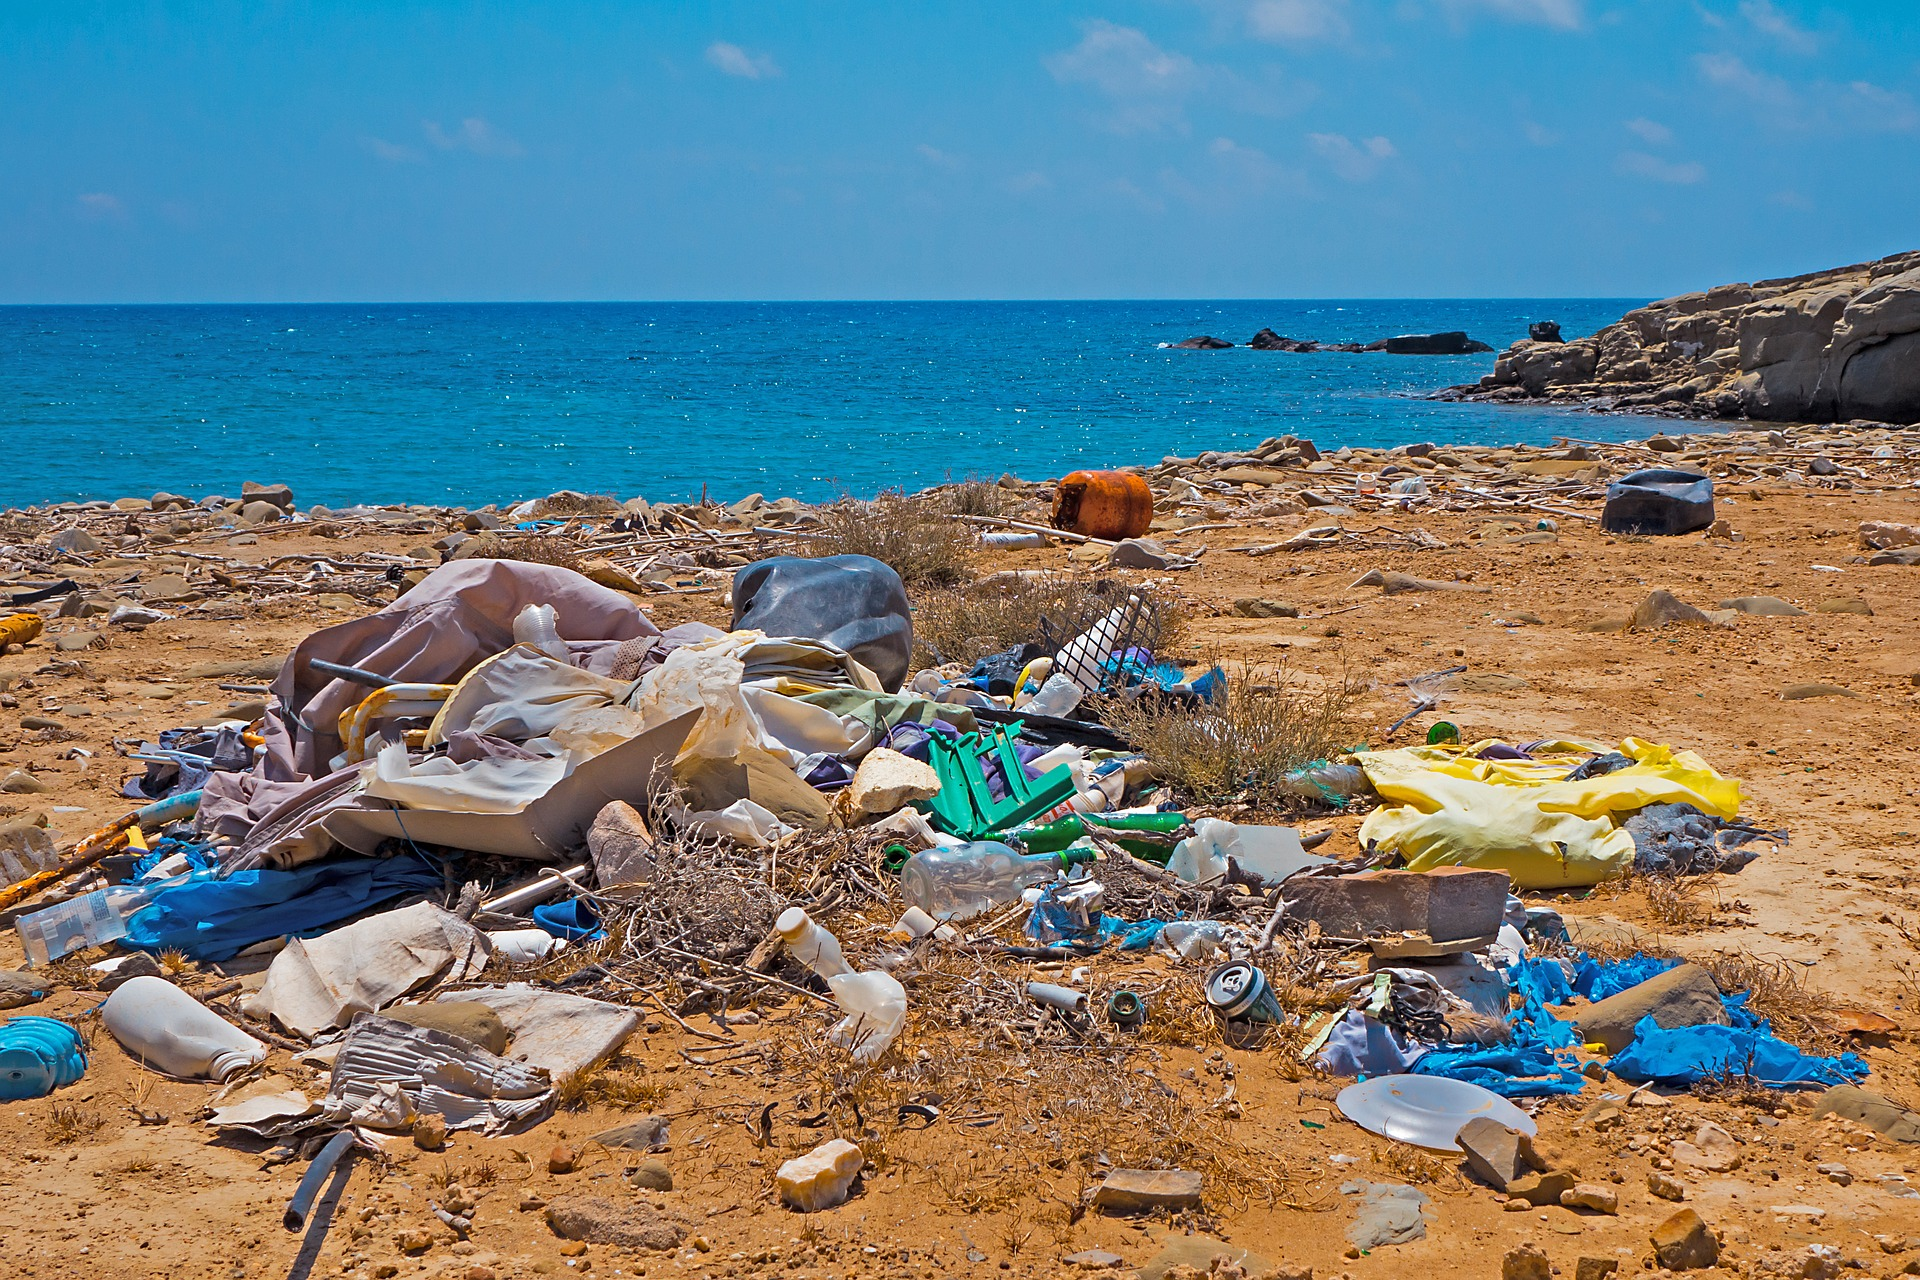 This image is ground level image of lots of plastic that is left on the beach with the sea in the background. There are plastic bags, bottles and rubbish.